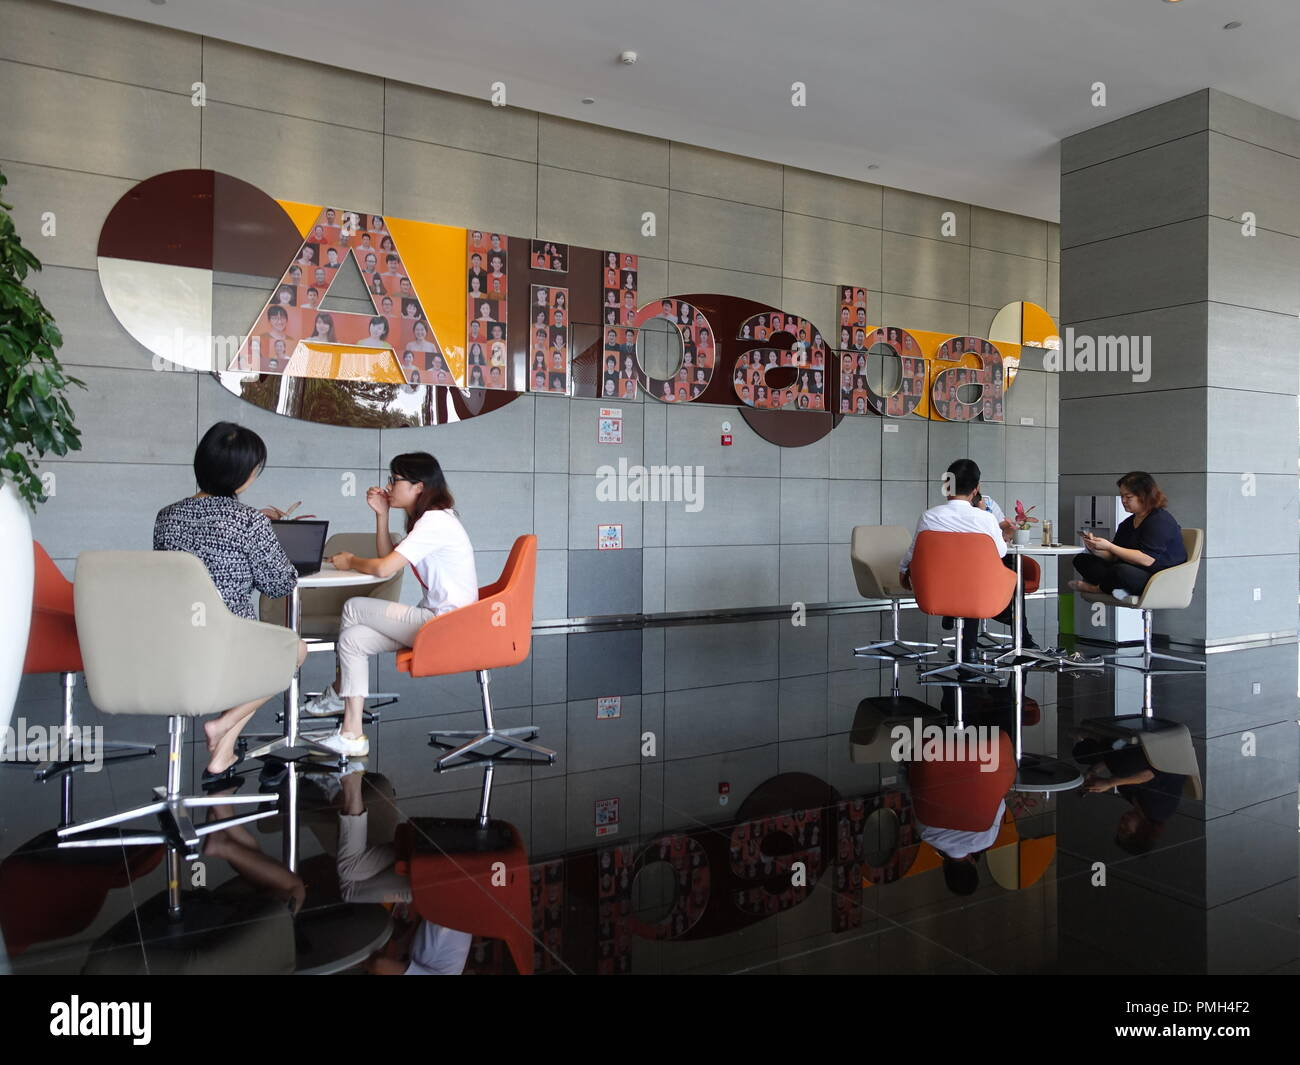 c96665693f74b9 Employees sit in a foyer of the company headquarters of the Chinese online group  Alibaba on chairs in front of a company logo. Credit  Andre Klohn dpa Alamy  ...